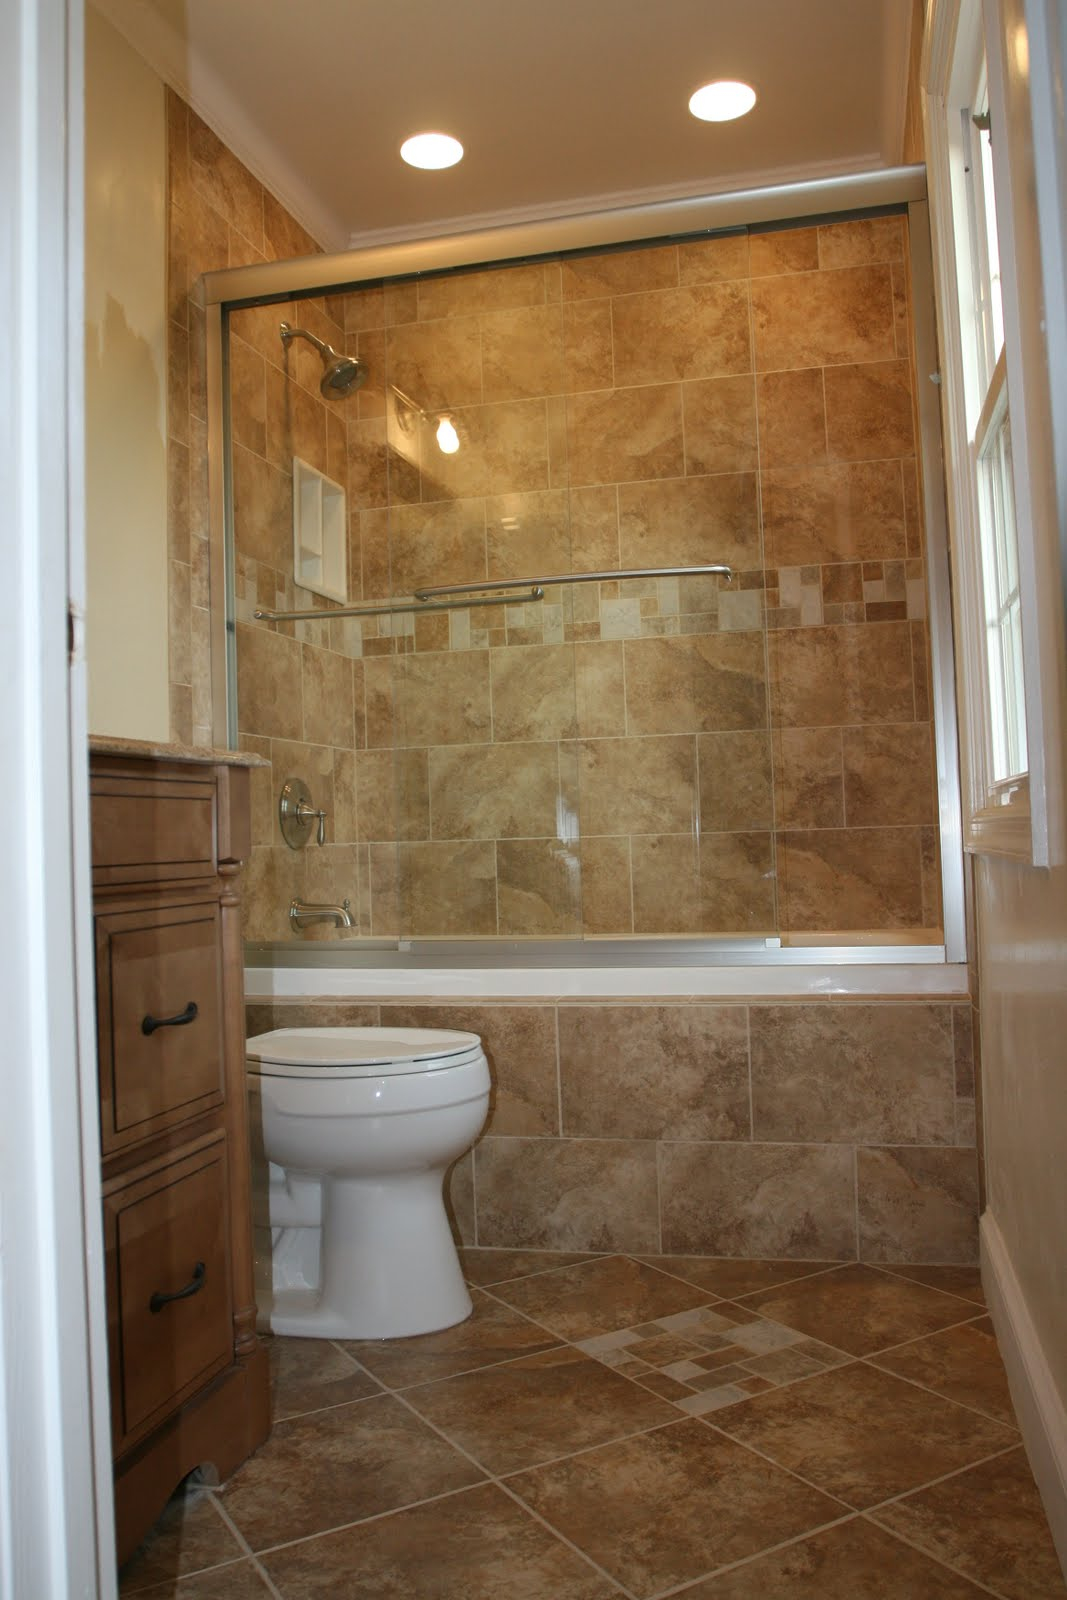 Bathroom remodeling design ideas tile shower niches for Bath remodel ideas